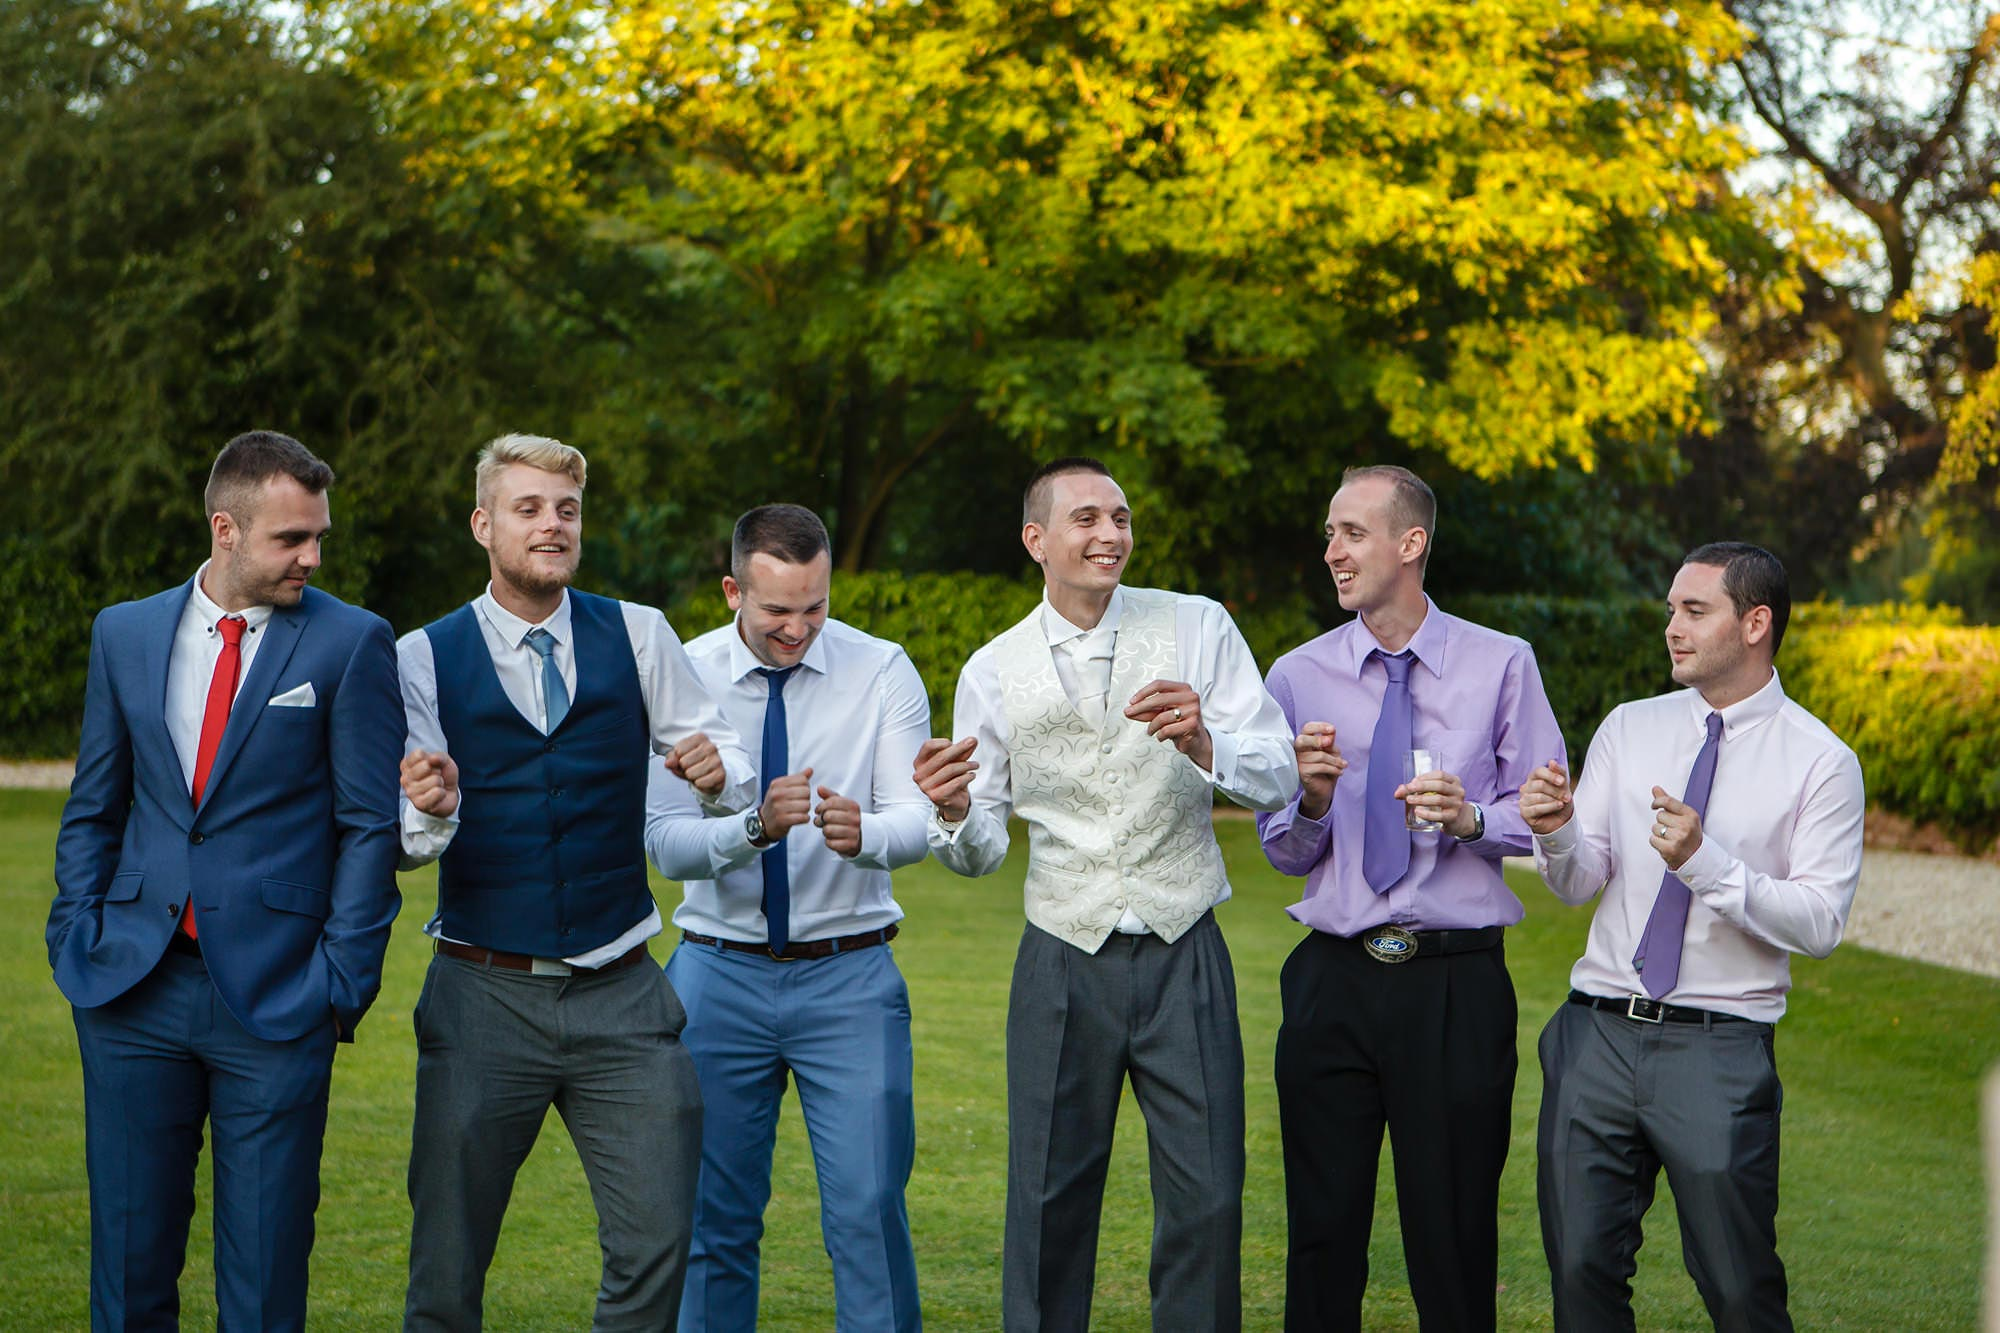 dancing at wedding all the boys